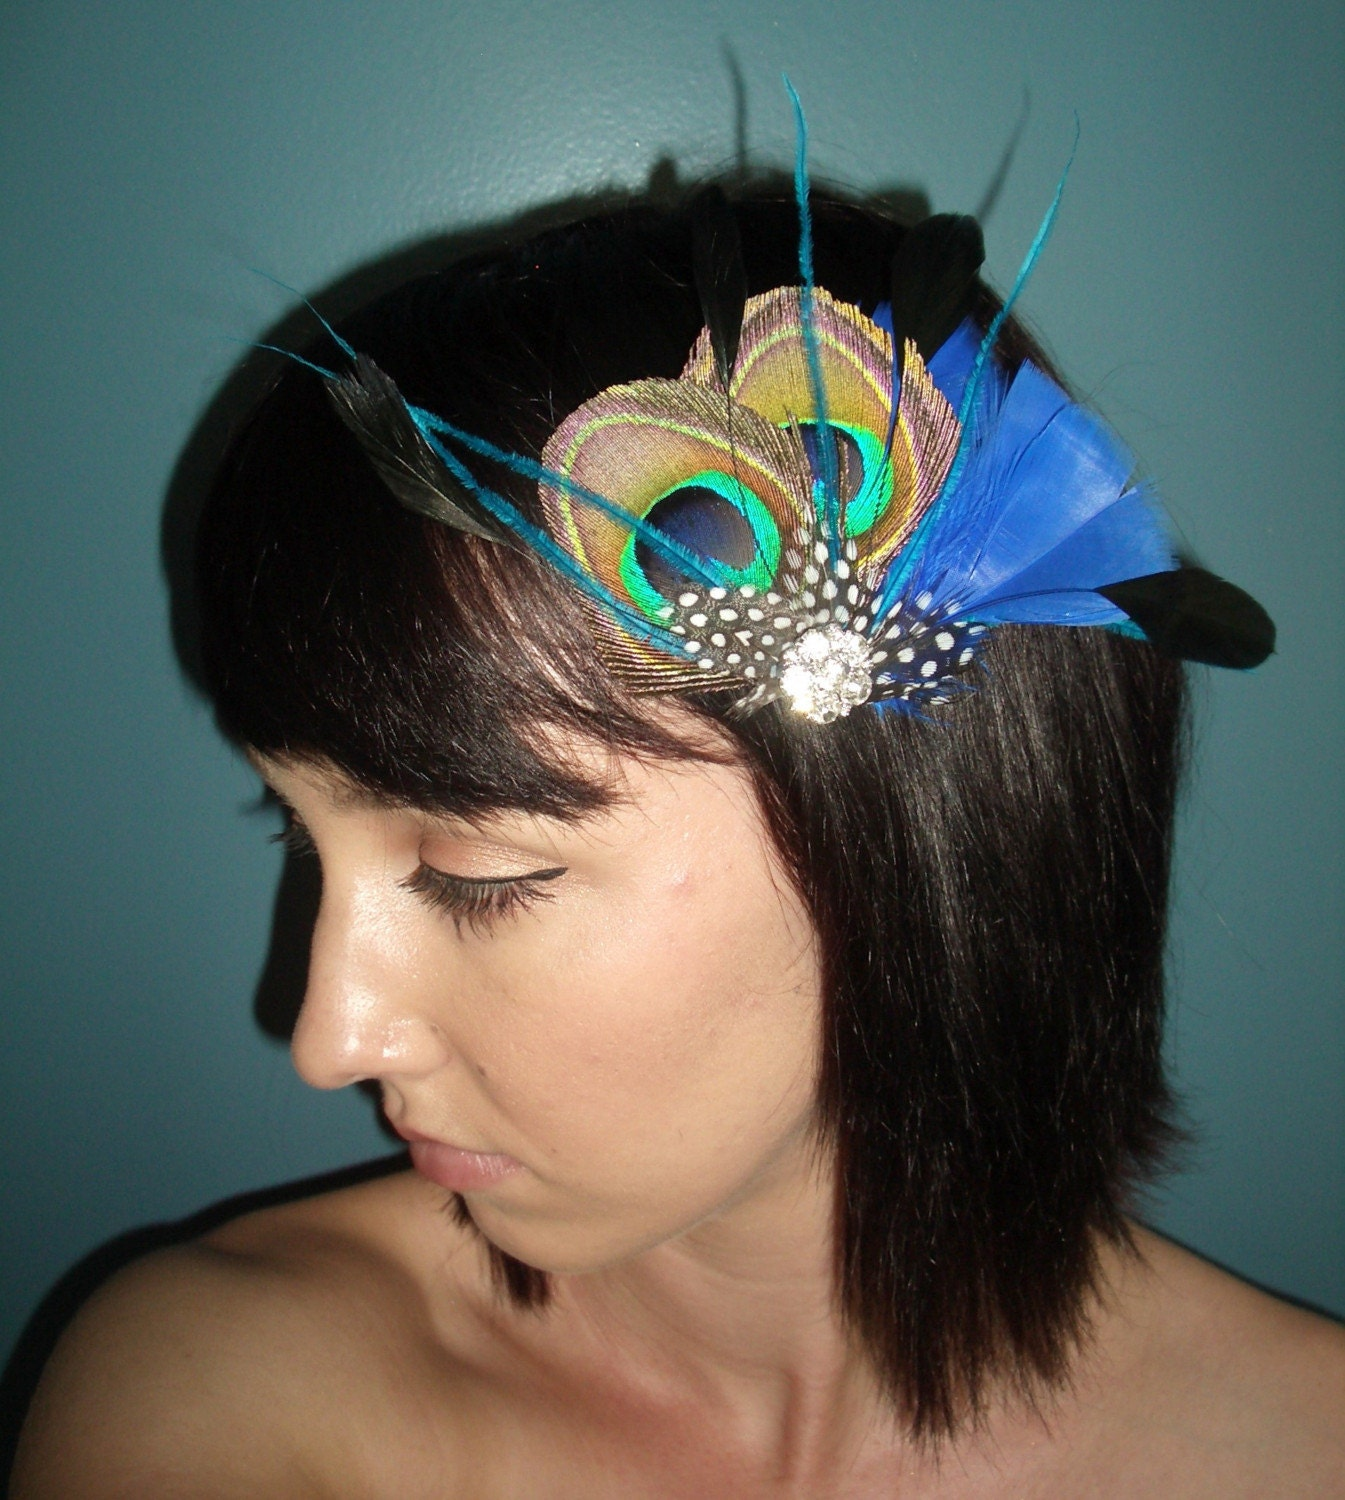 Peacock and Blue Feather Fascinator by TessaKim on Etsy from etsy.com